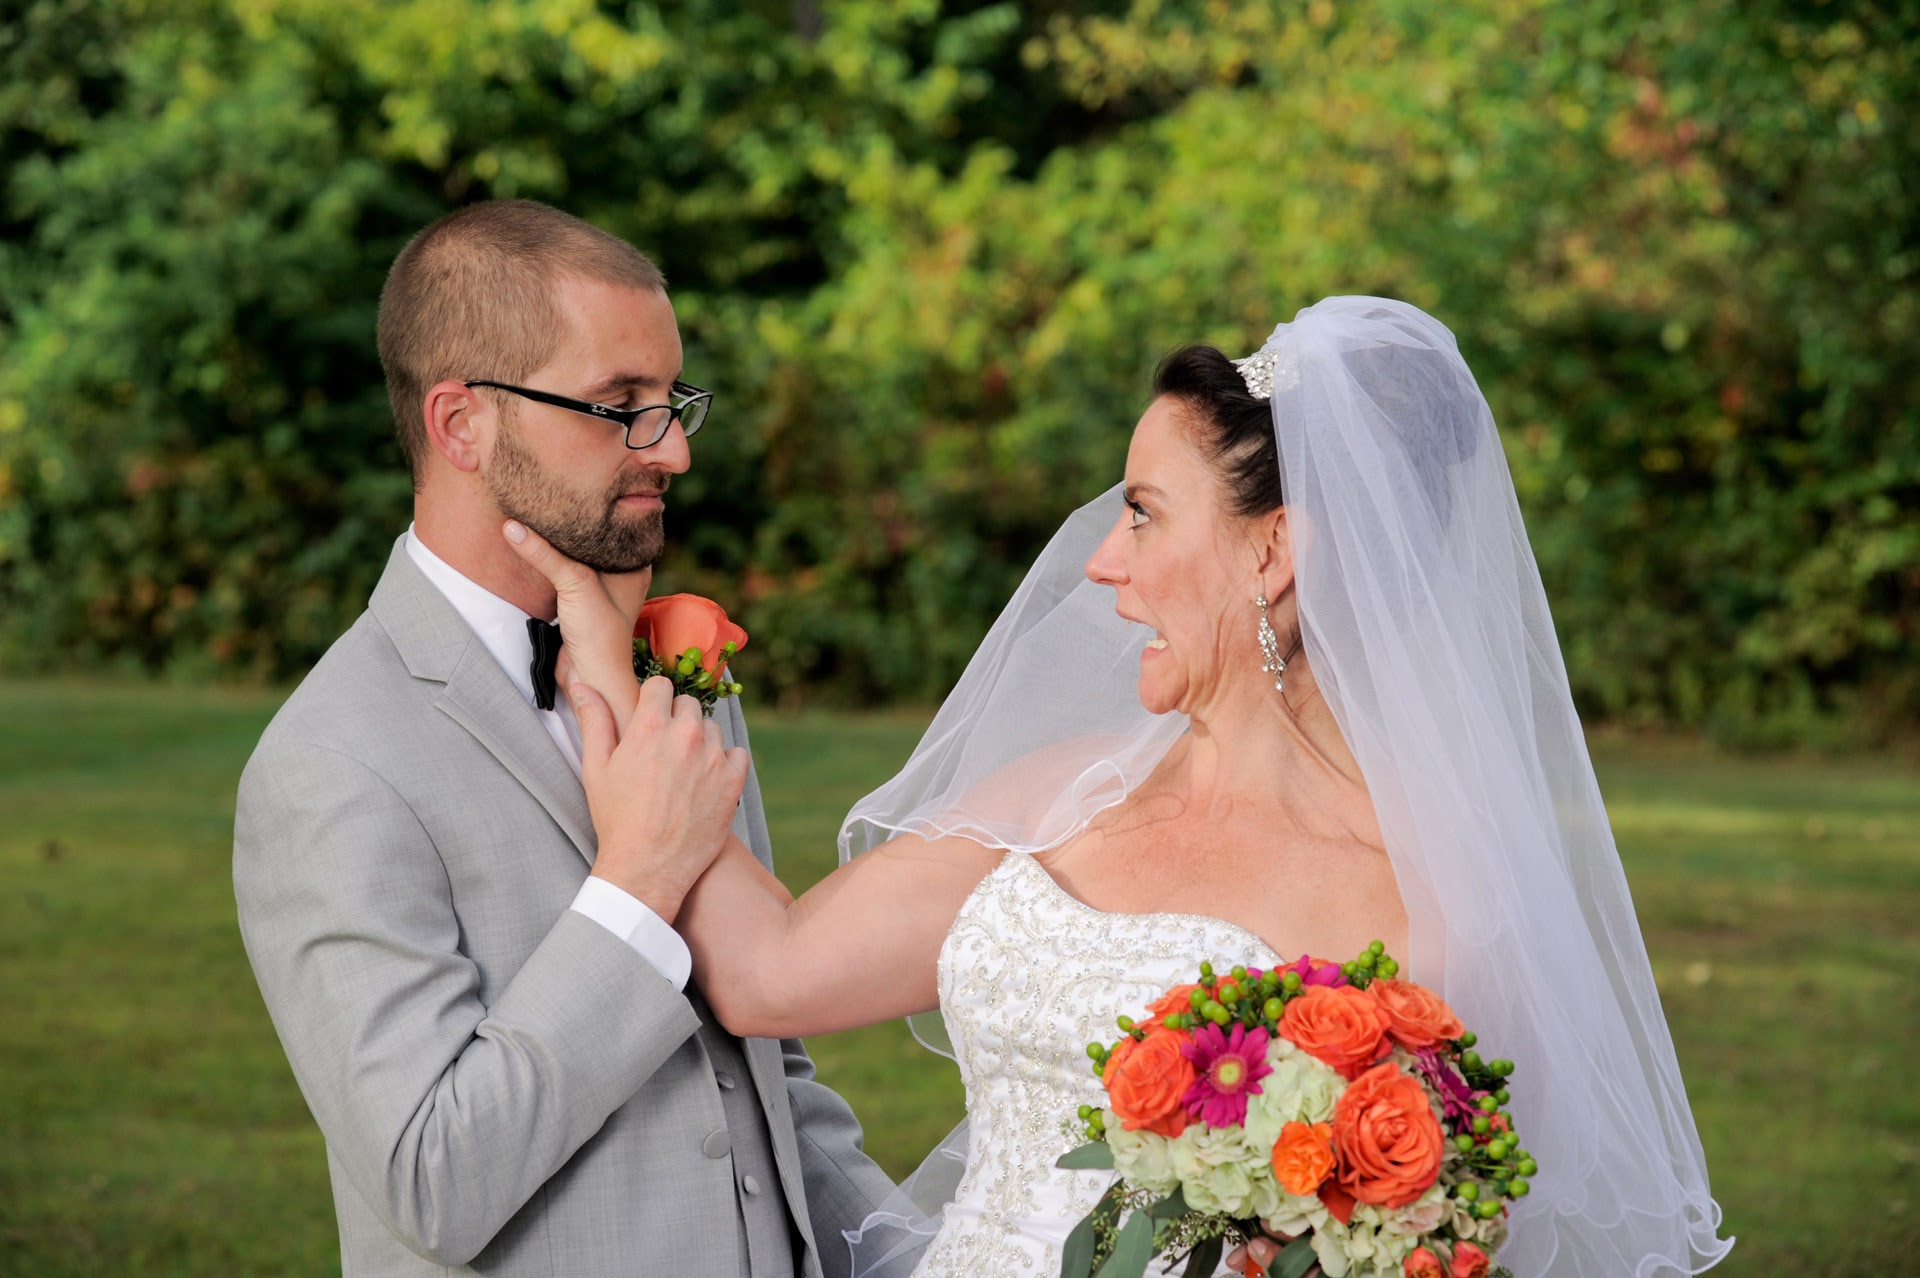 Wedding At Wyndham Garden Formerly Known As The Sterling Inn In Sterling Heights Michigan And